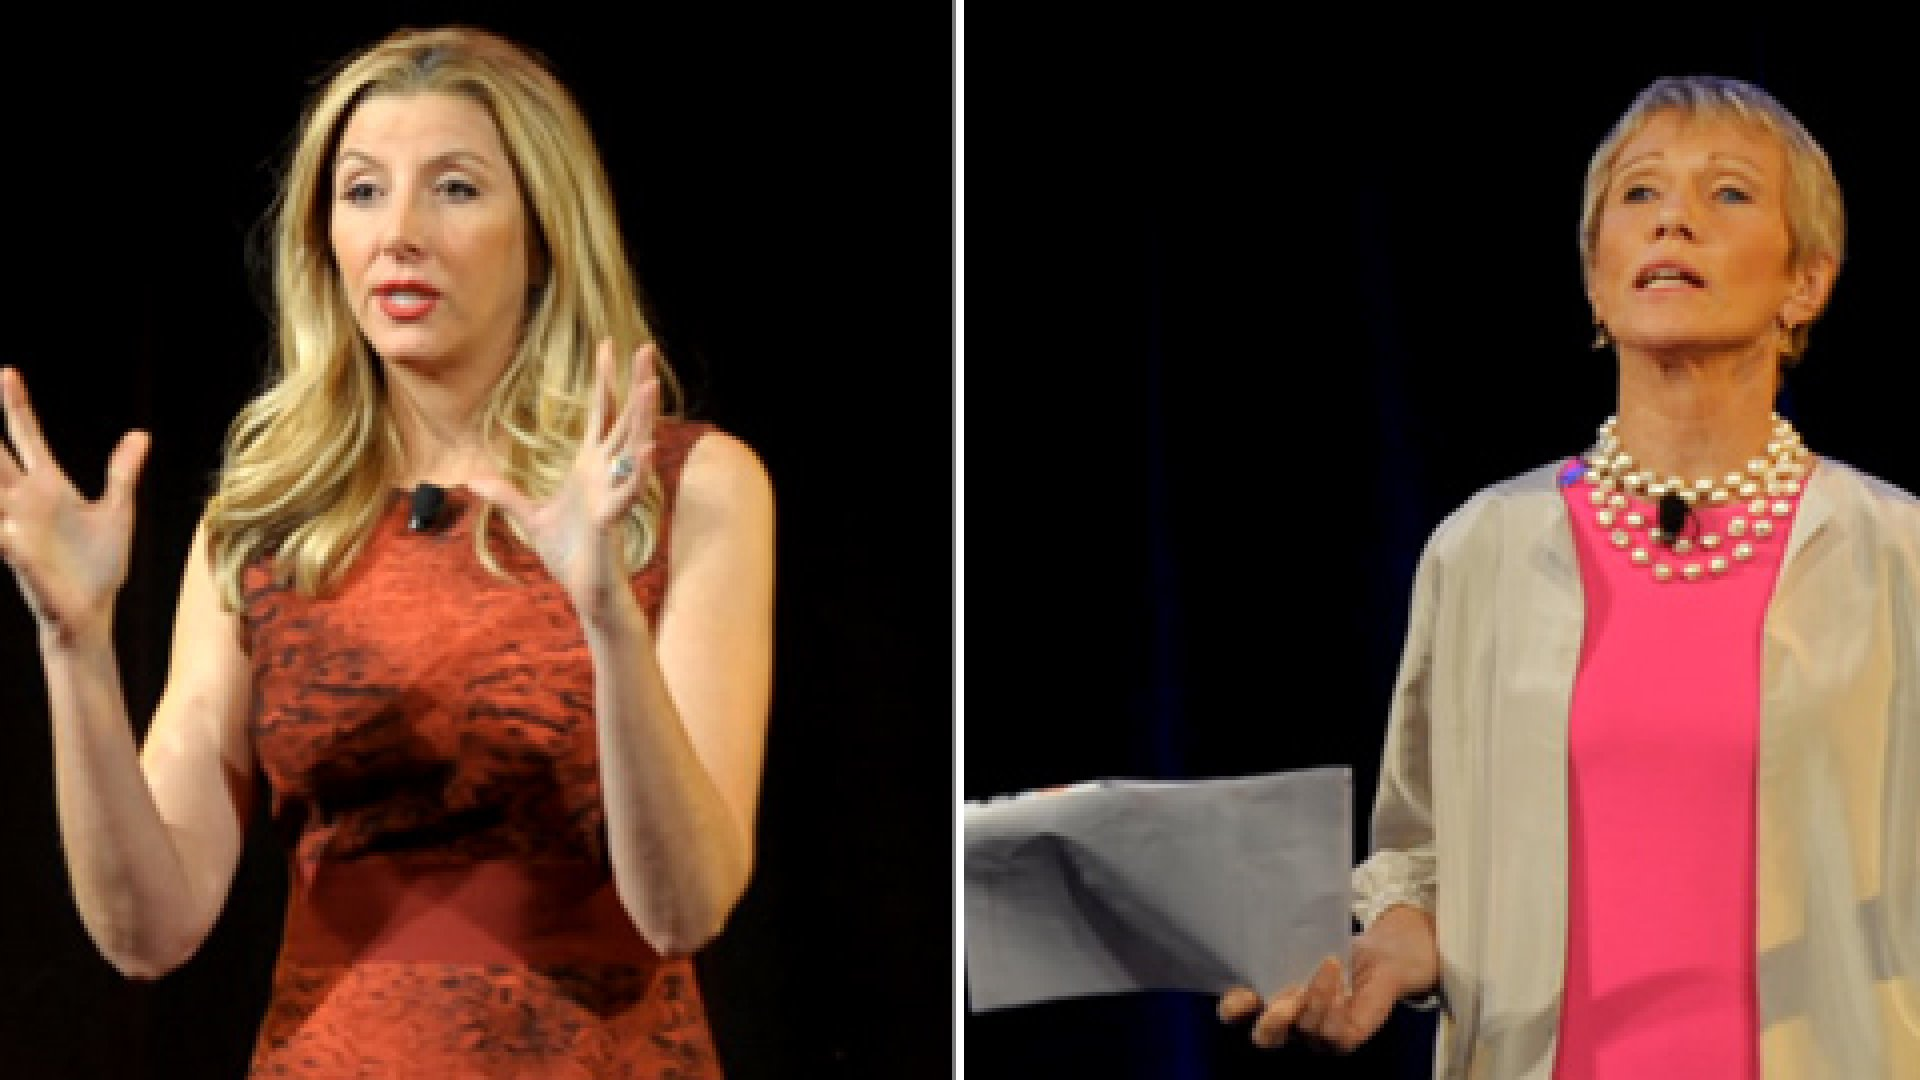 Sara Blakely, founder of Spanx, and real-estate entrepreneur Barbara Corcoran spilled their sales secrets at the Inc. Women's Summit.